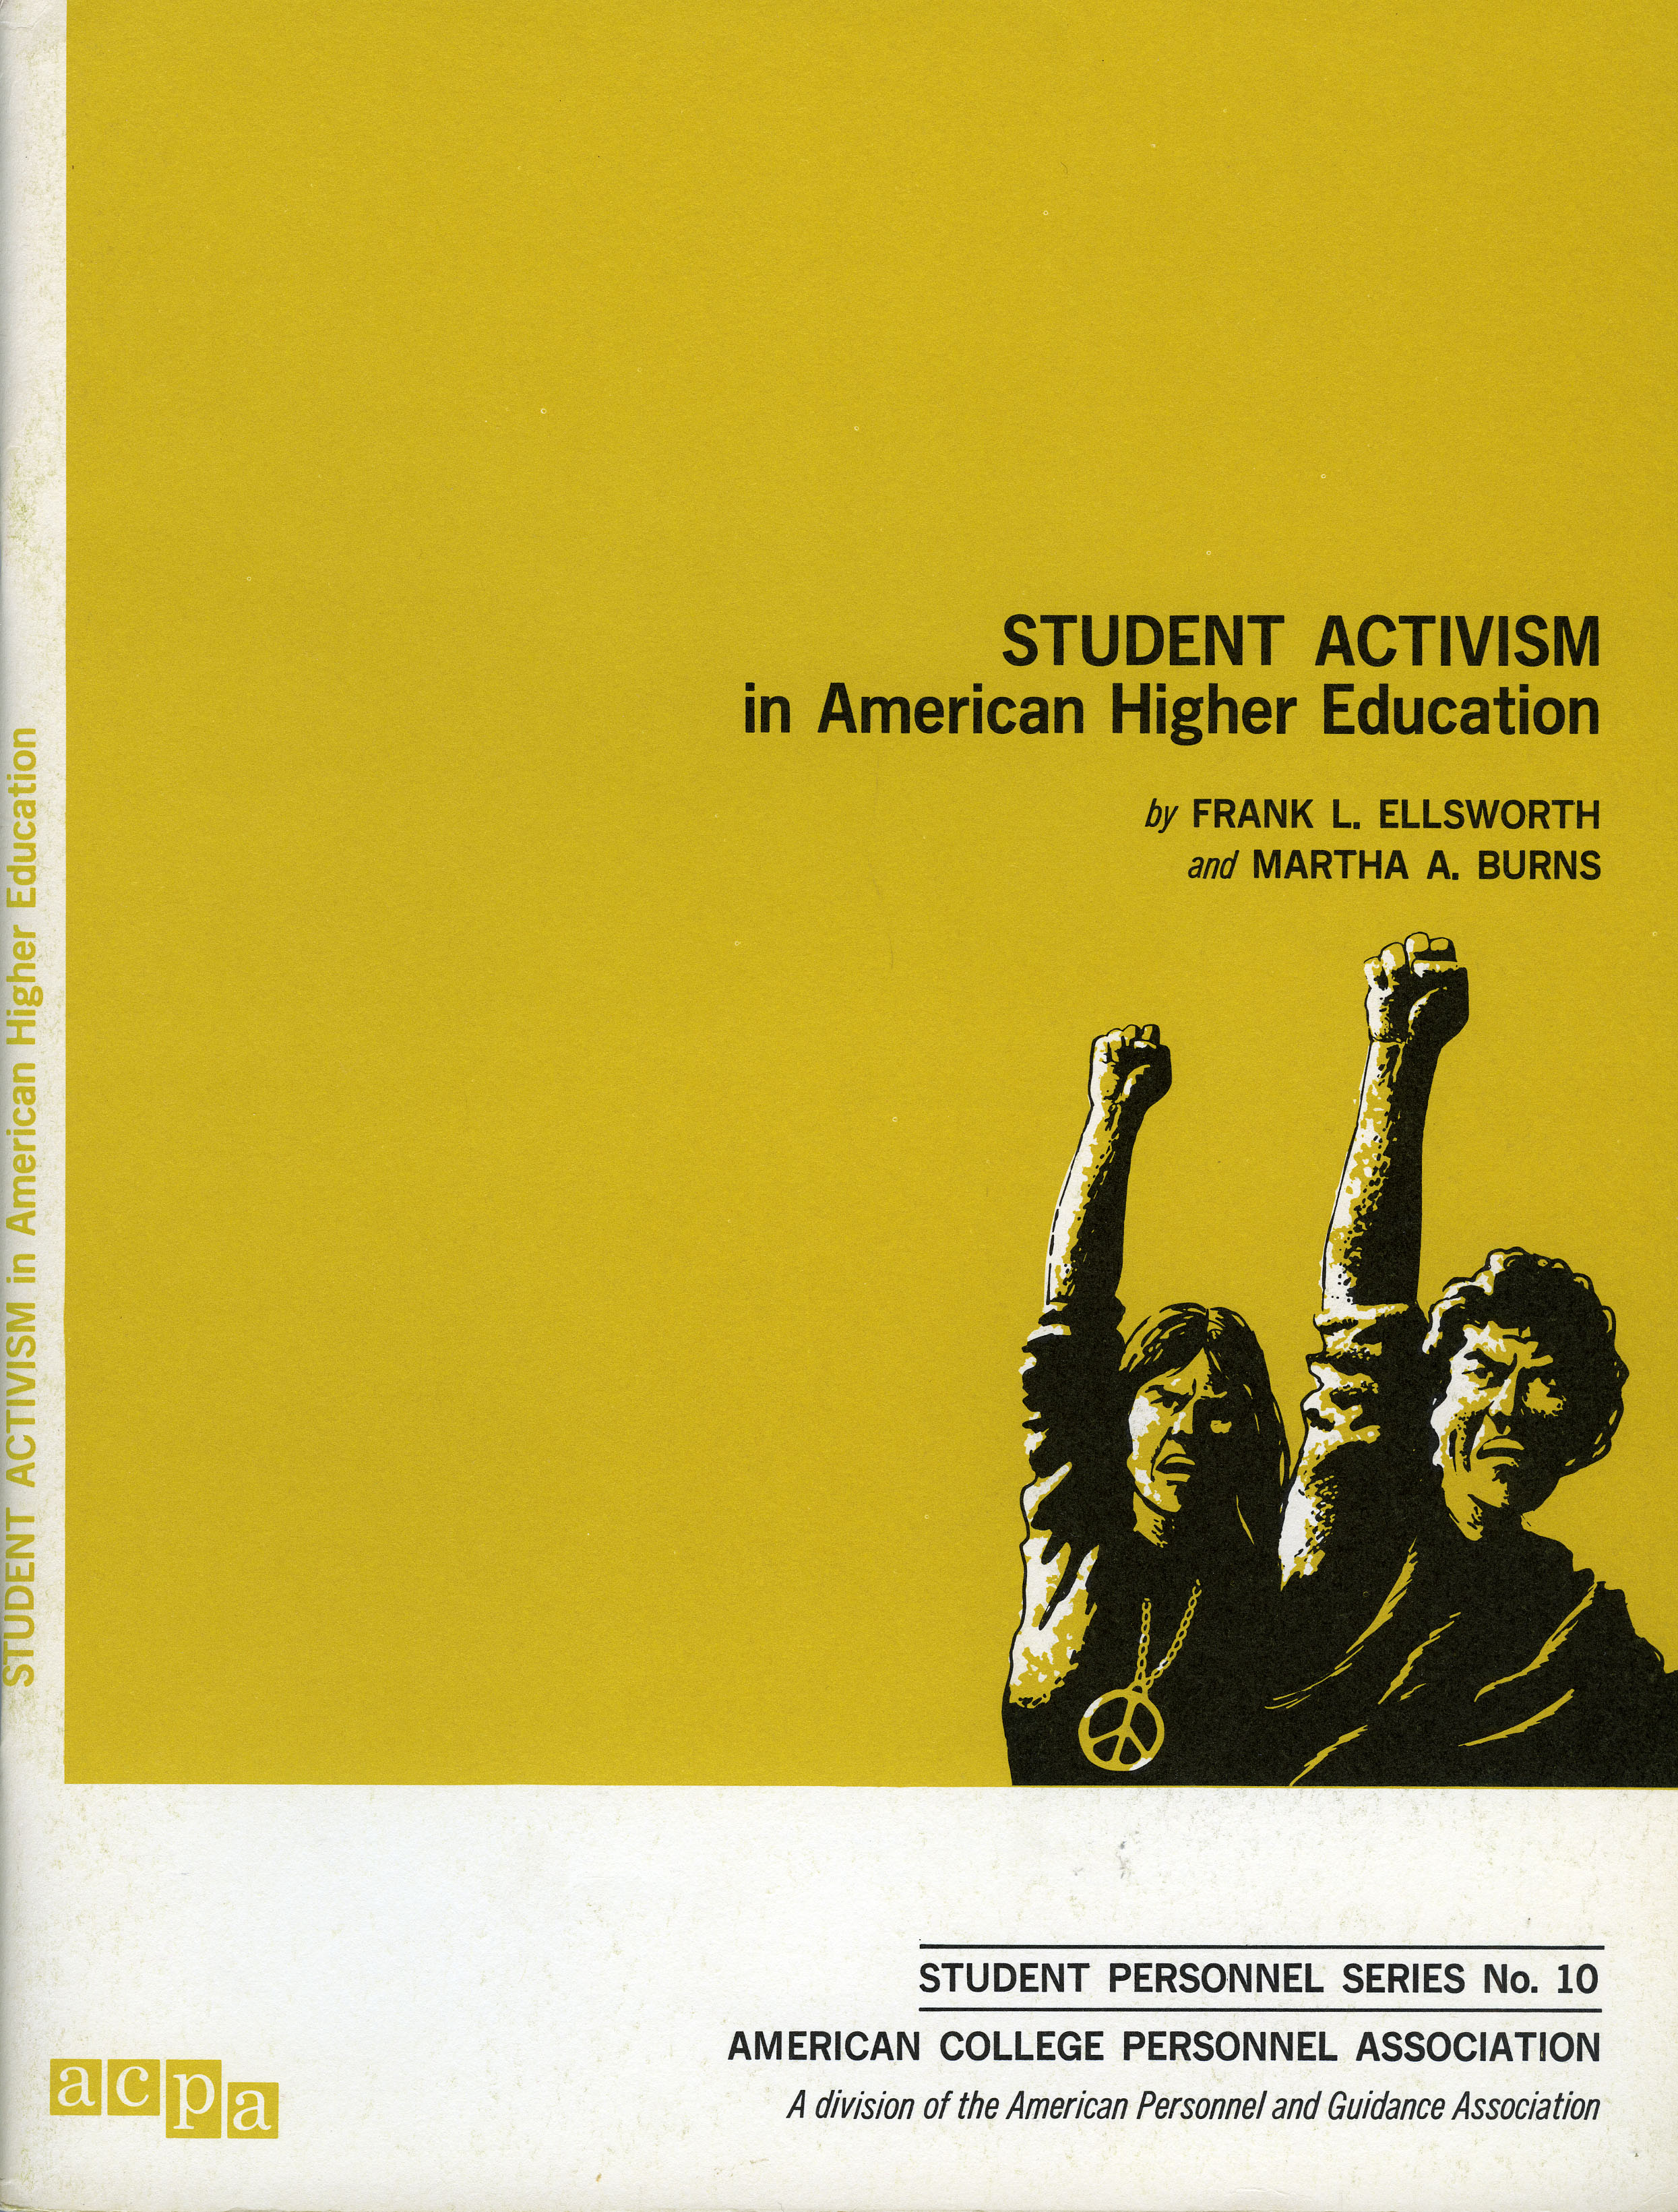 Student Activism in American Higher Education